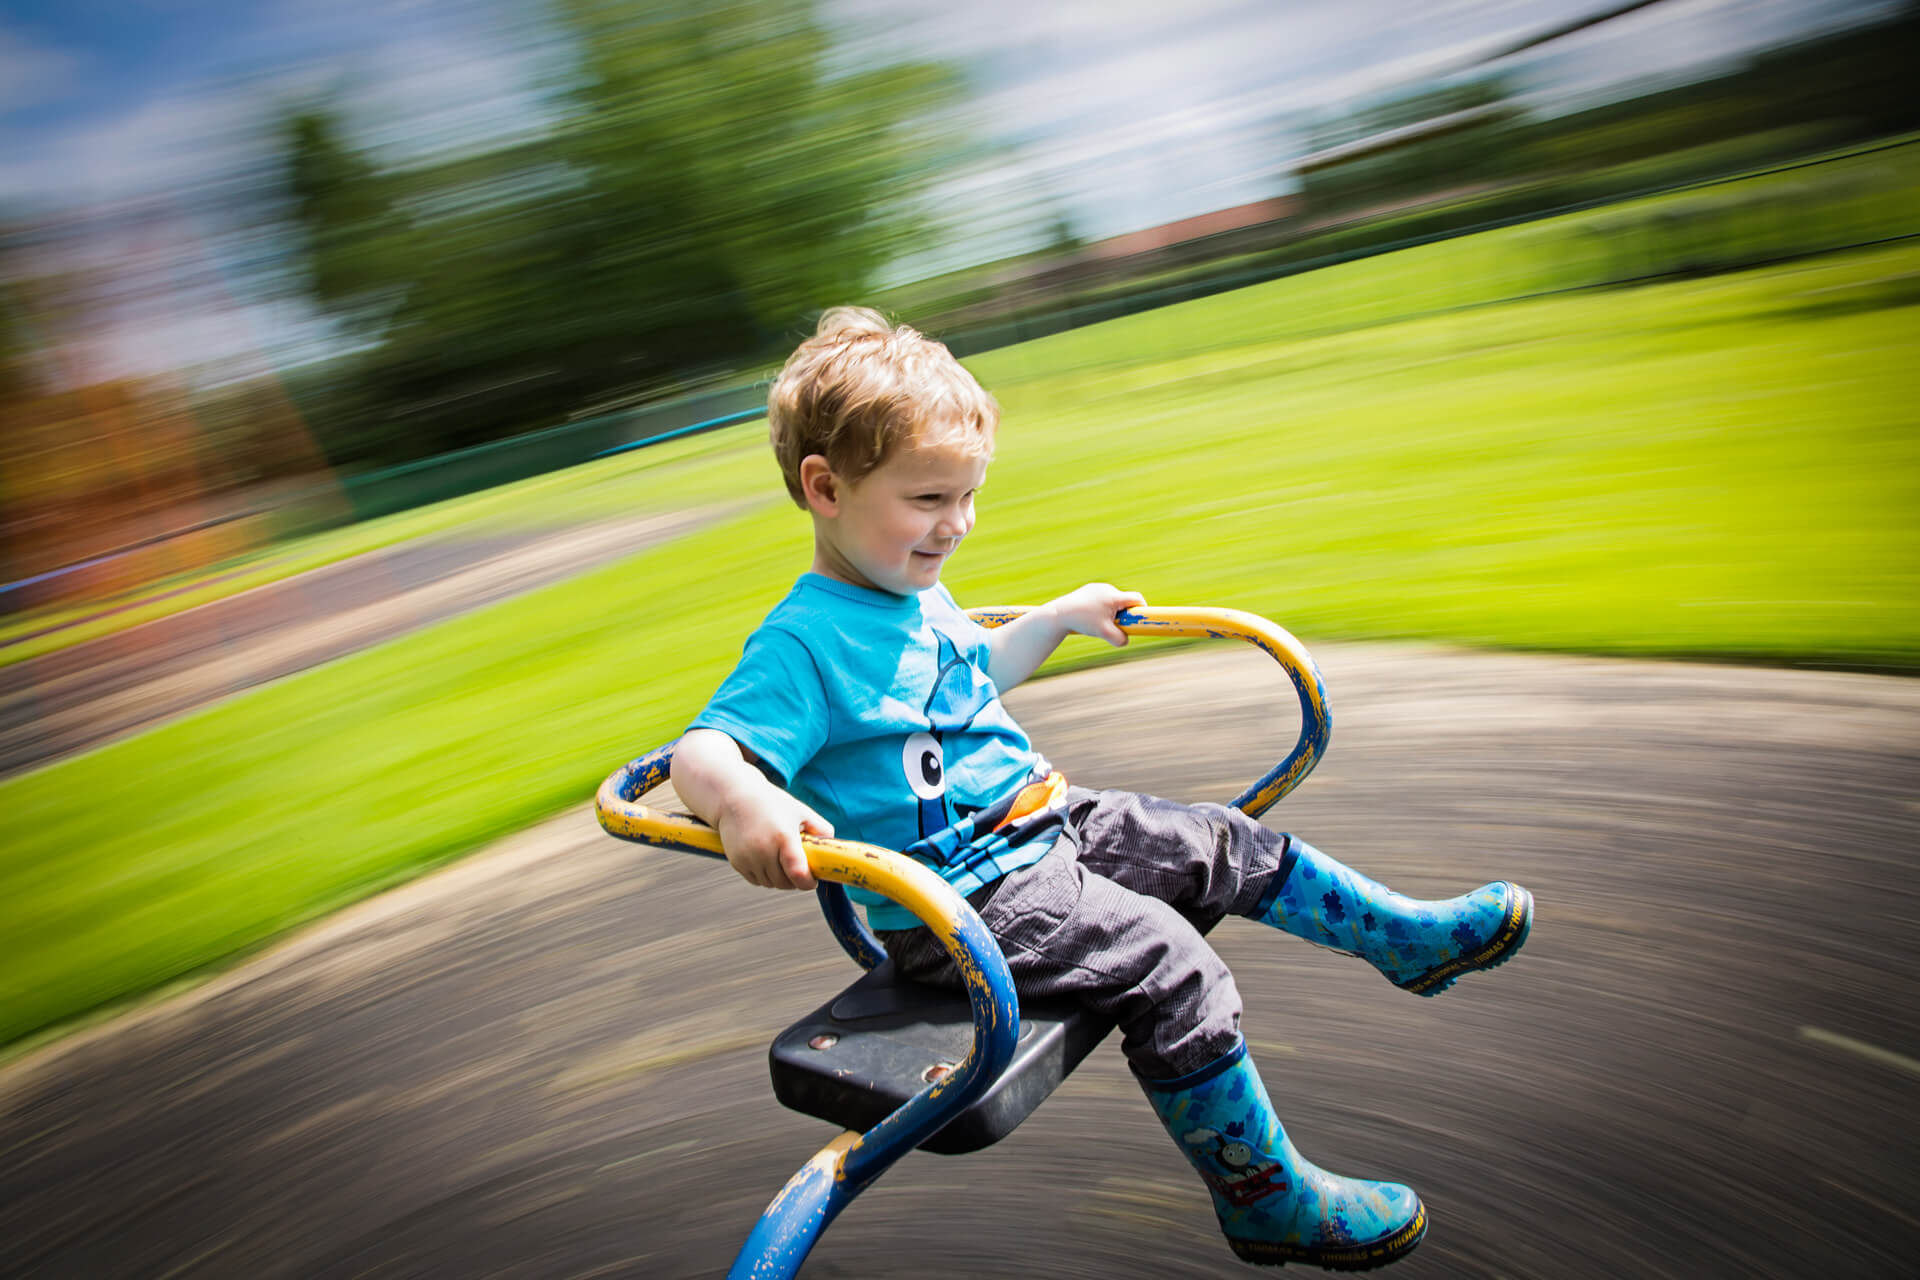 yorkshire wedding photography - boy spinning on a roundabout